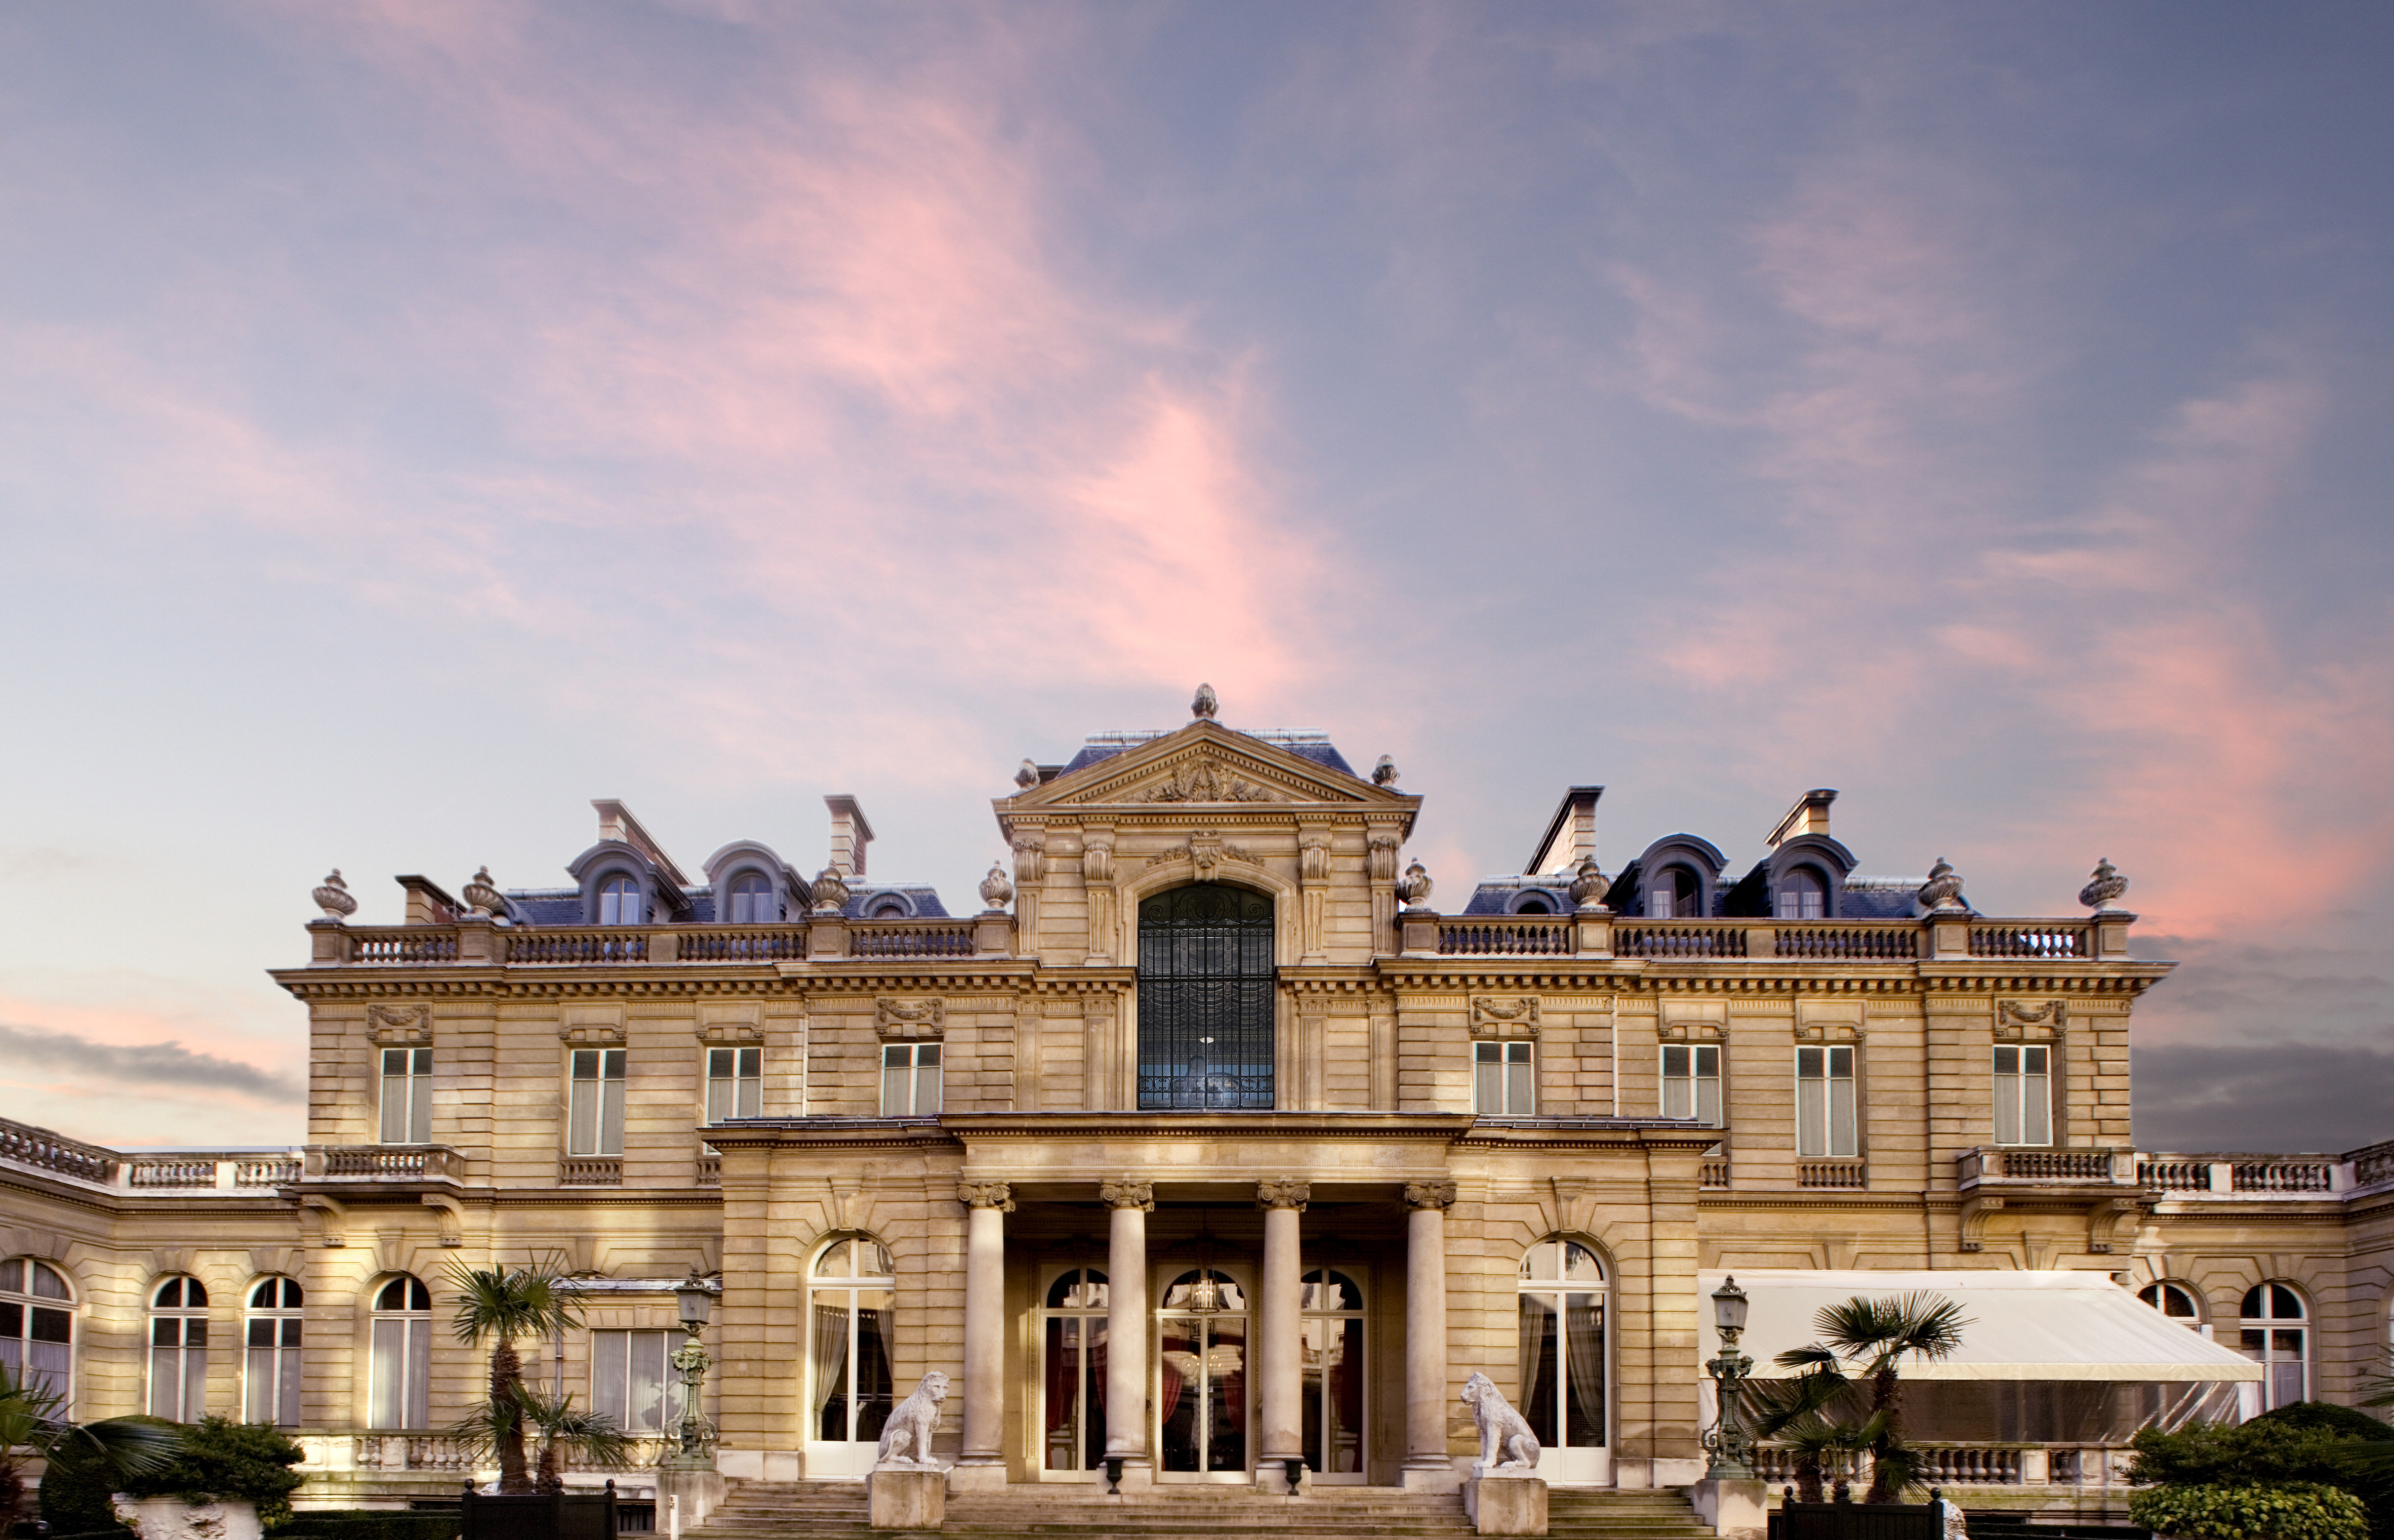 Musée Jacquemart-André, Paris: All year